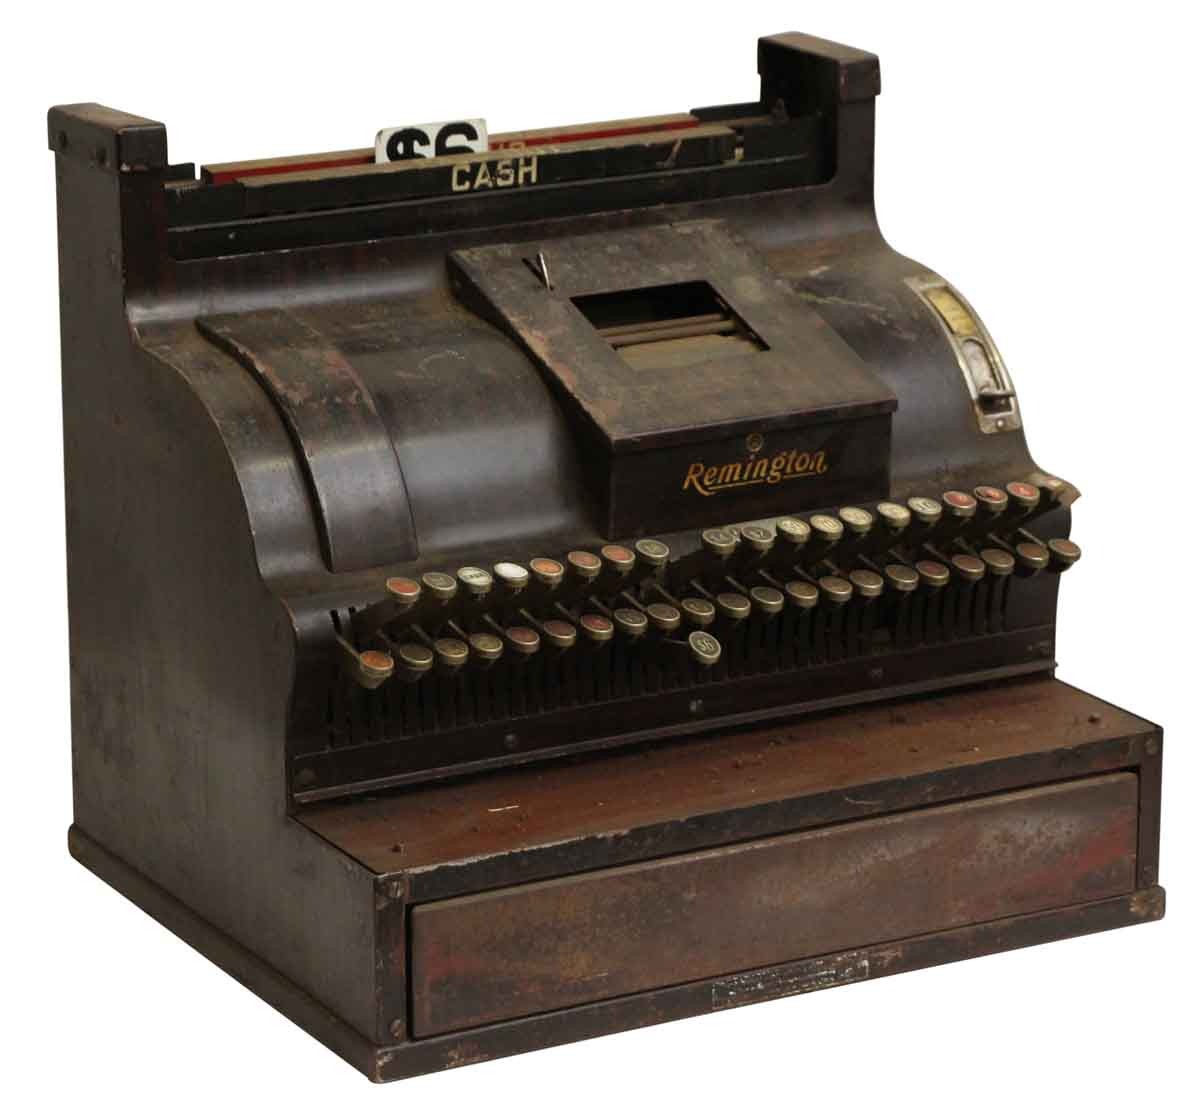 Olde Remington Cash Register | Olde Good Things